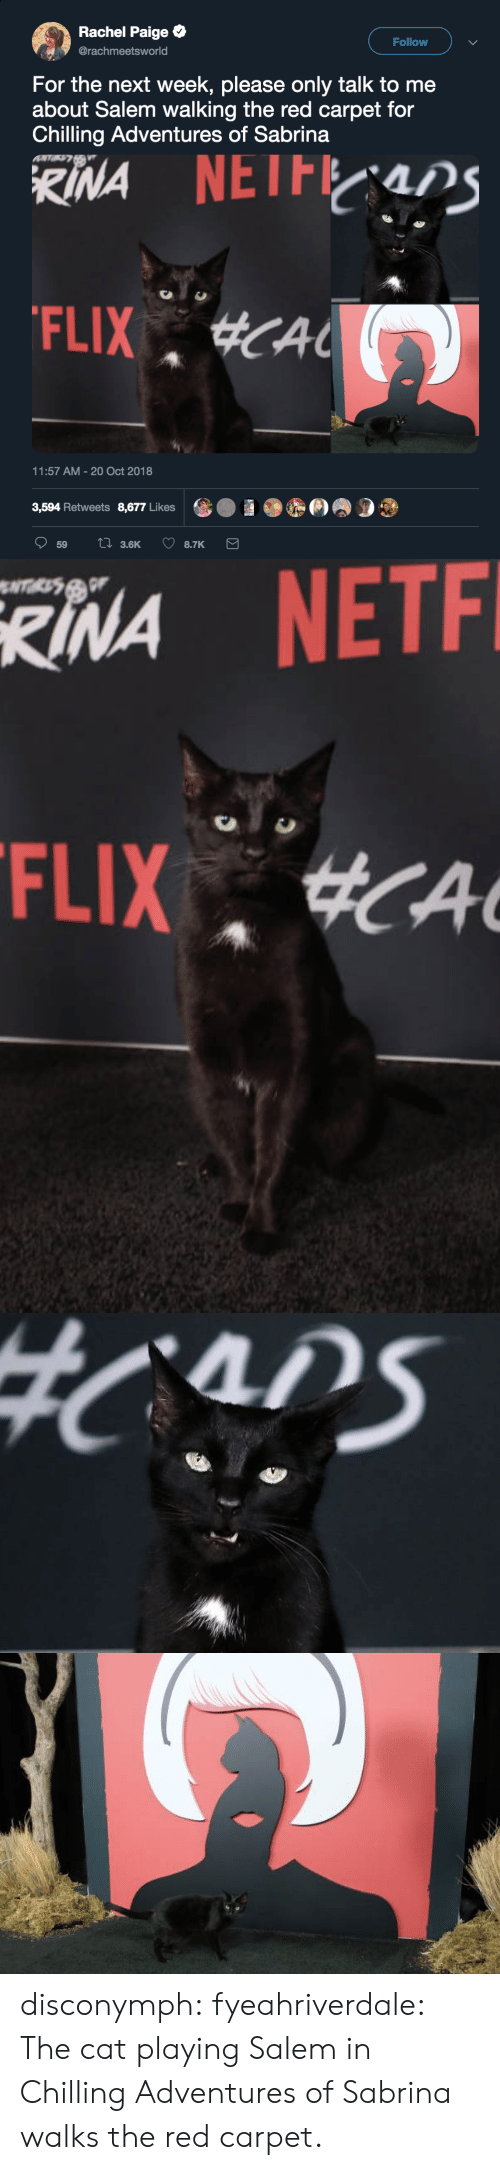 Gif, Target, and Tumblr: Rachel Paige  @rachmeetsworld  Follow  For the next week, please only talk to me  about Salem walking the red carpet for  Chilling Adventures of Sabrina  11:57 AM-20 Oct 2018  3,594 Retweets 8,677 Likes   RINA  NETF disconymph:  fyeahriverdale: The cat playing Salem in Chilling Adventures of Sabrina walks the red carpet.